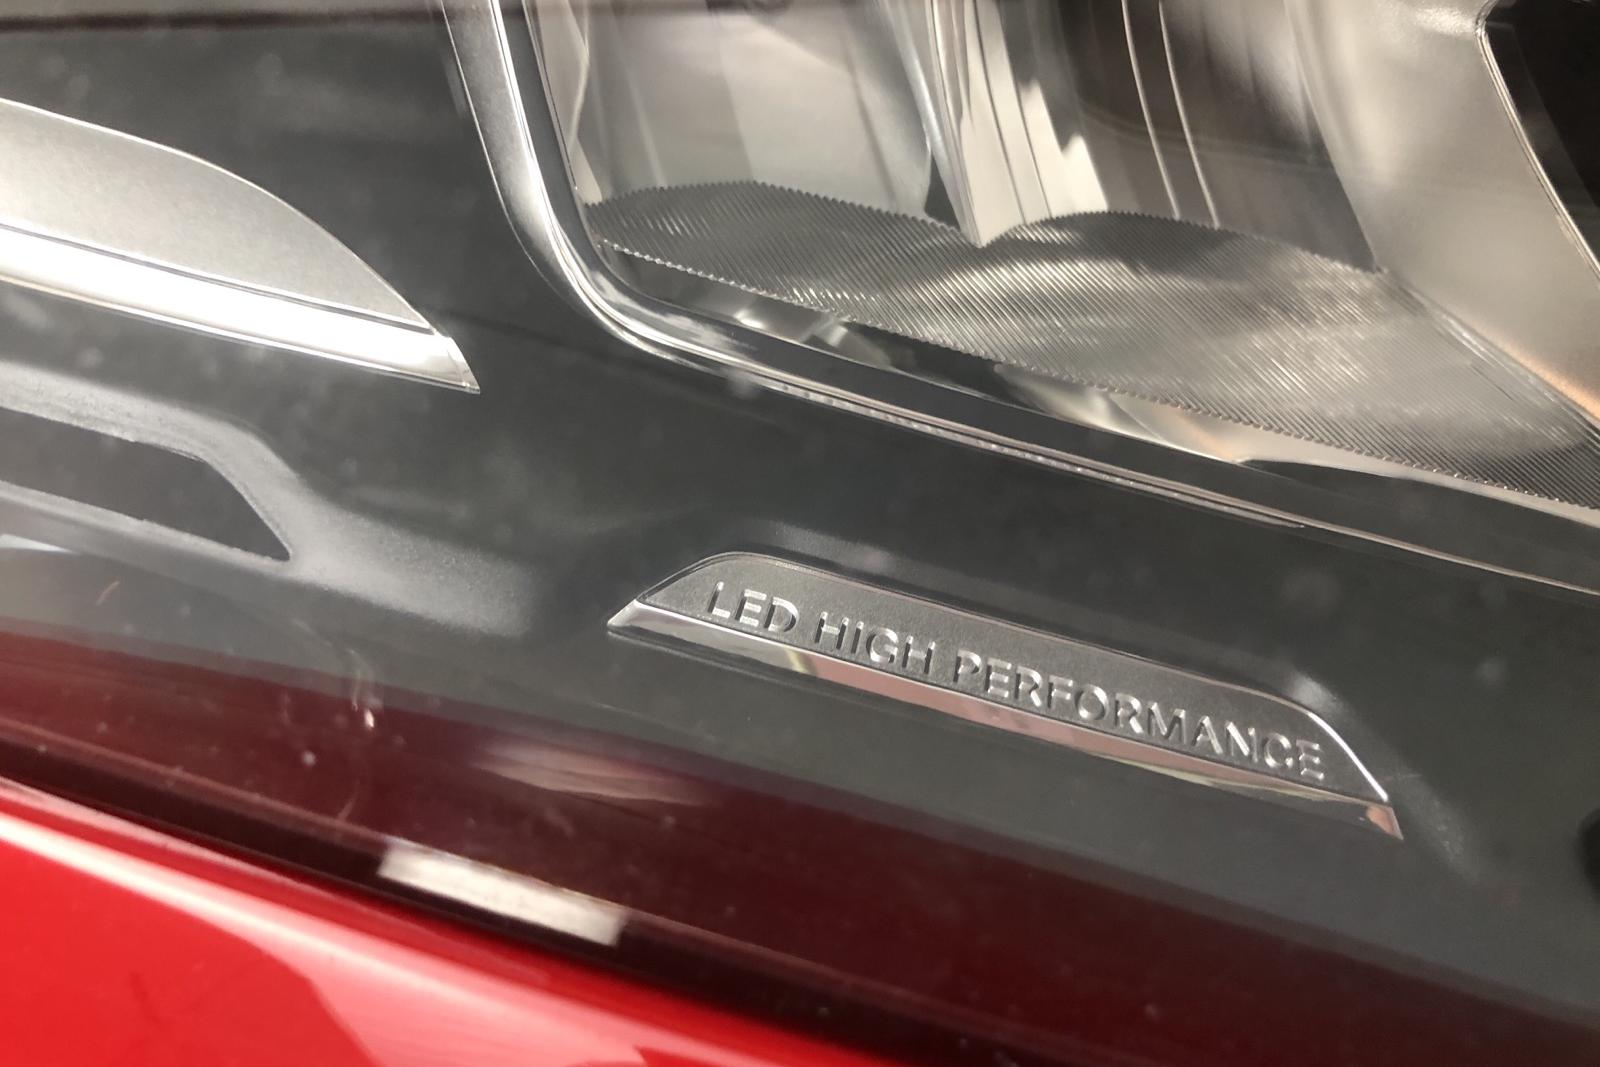 Mercedes CLA 220 d 4MATIC Shooting Brake X117 (177hk) - 83 860 km - Automatic - red - 2018